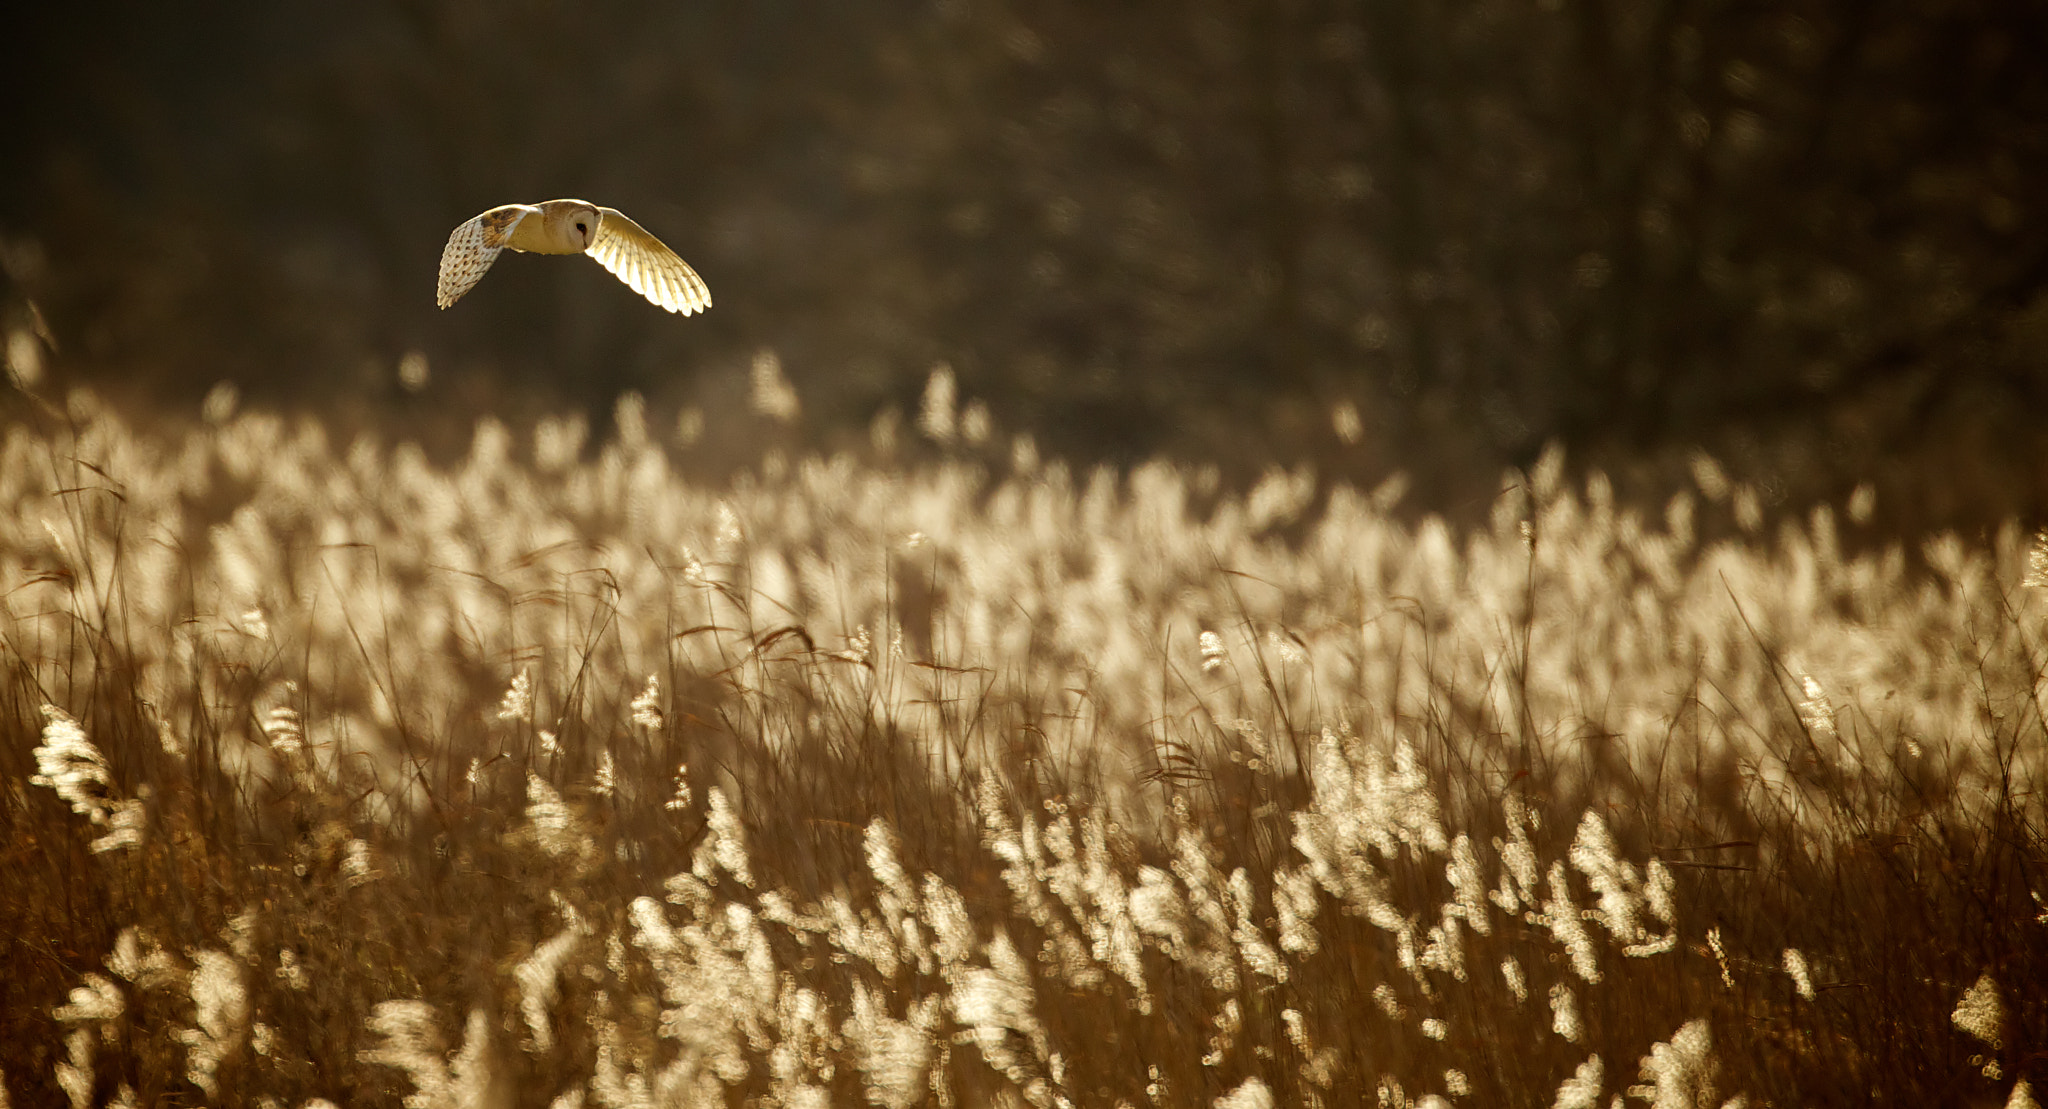 Photograph split tones by Mark Bridger on 500px